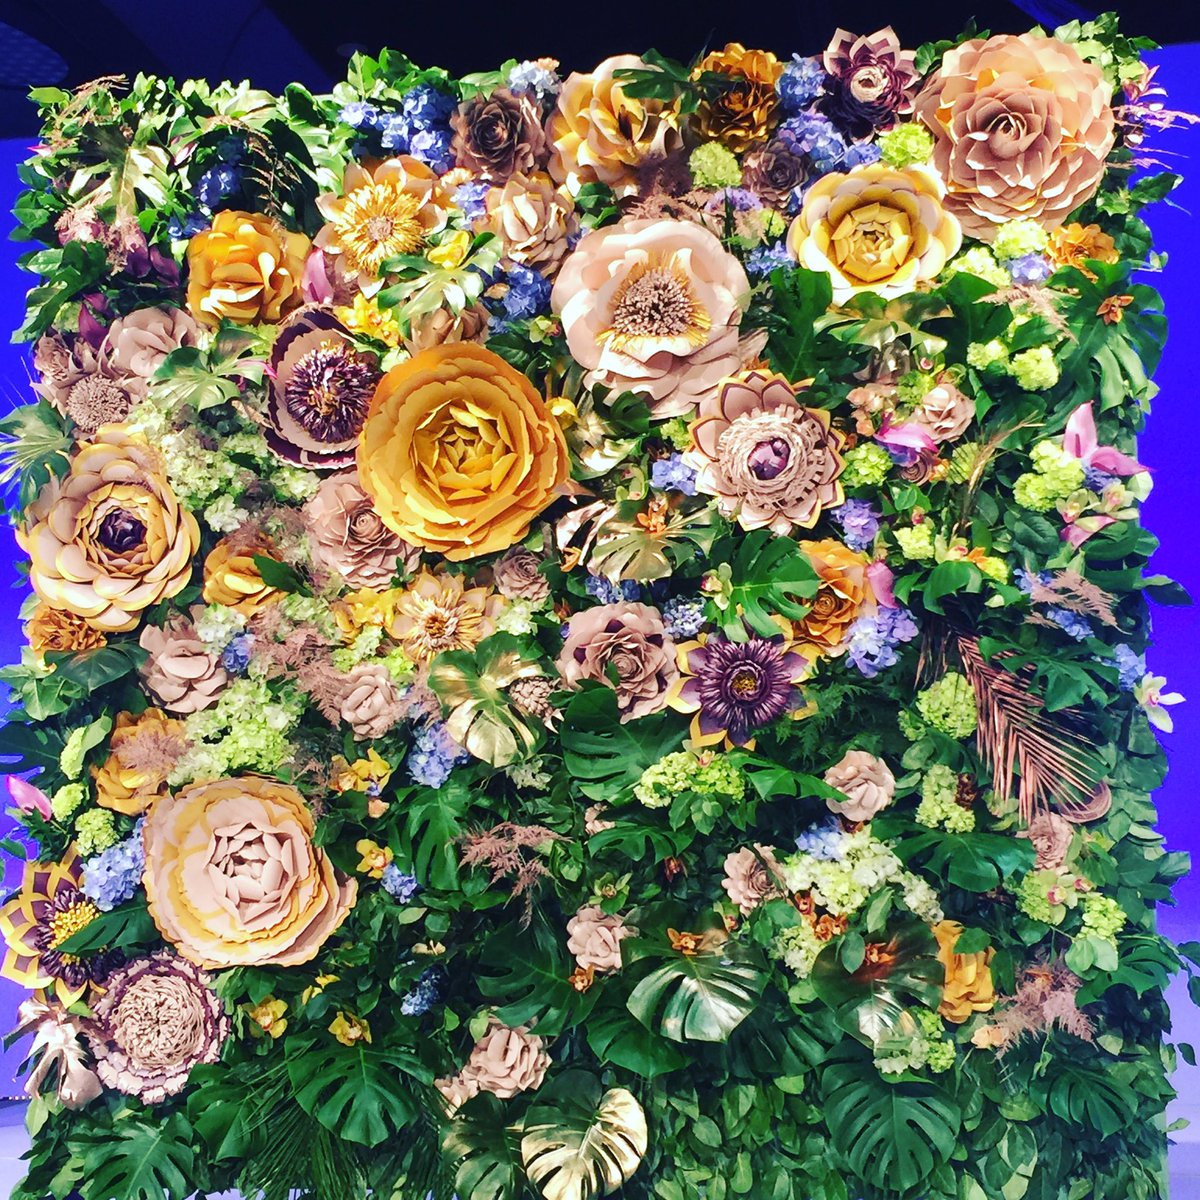 Floralwall Hashtag On Twitter